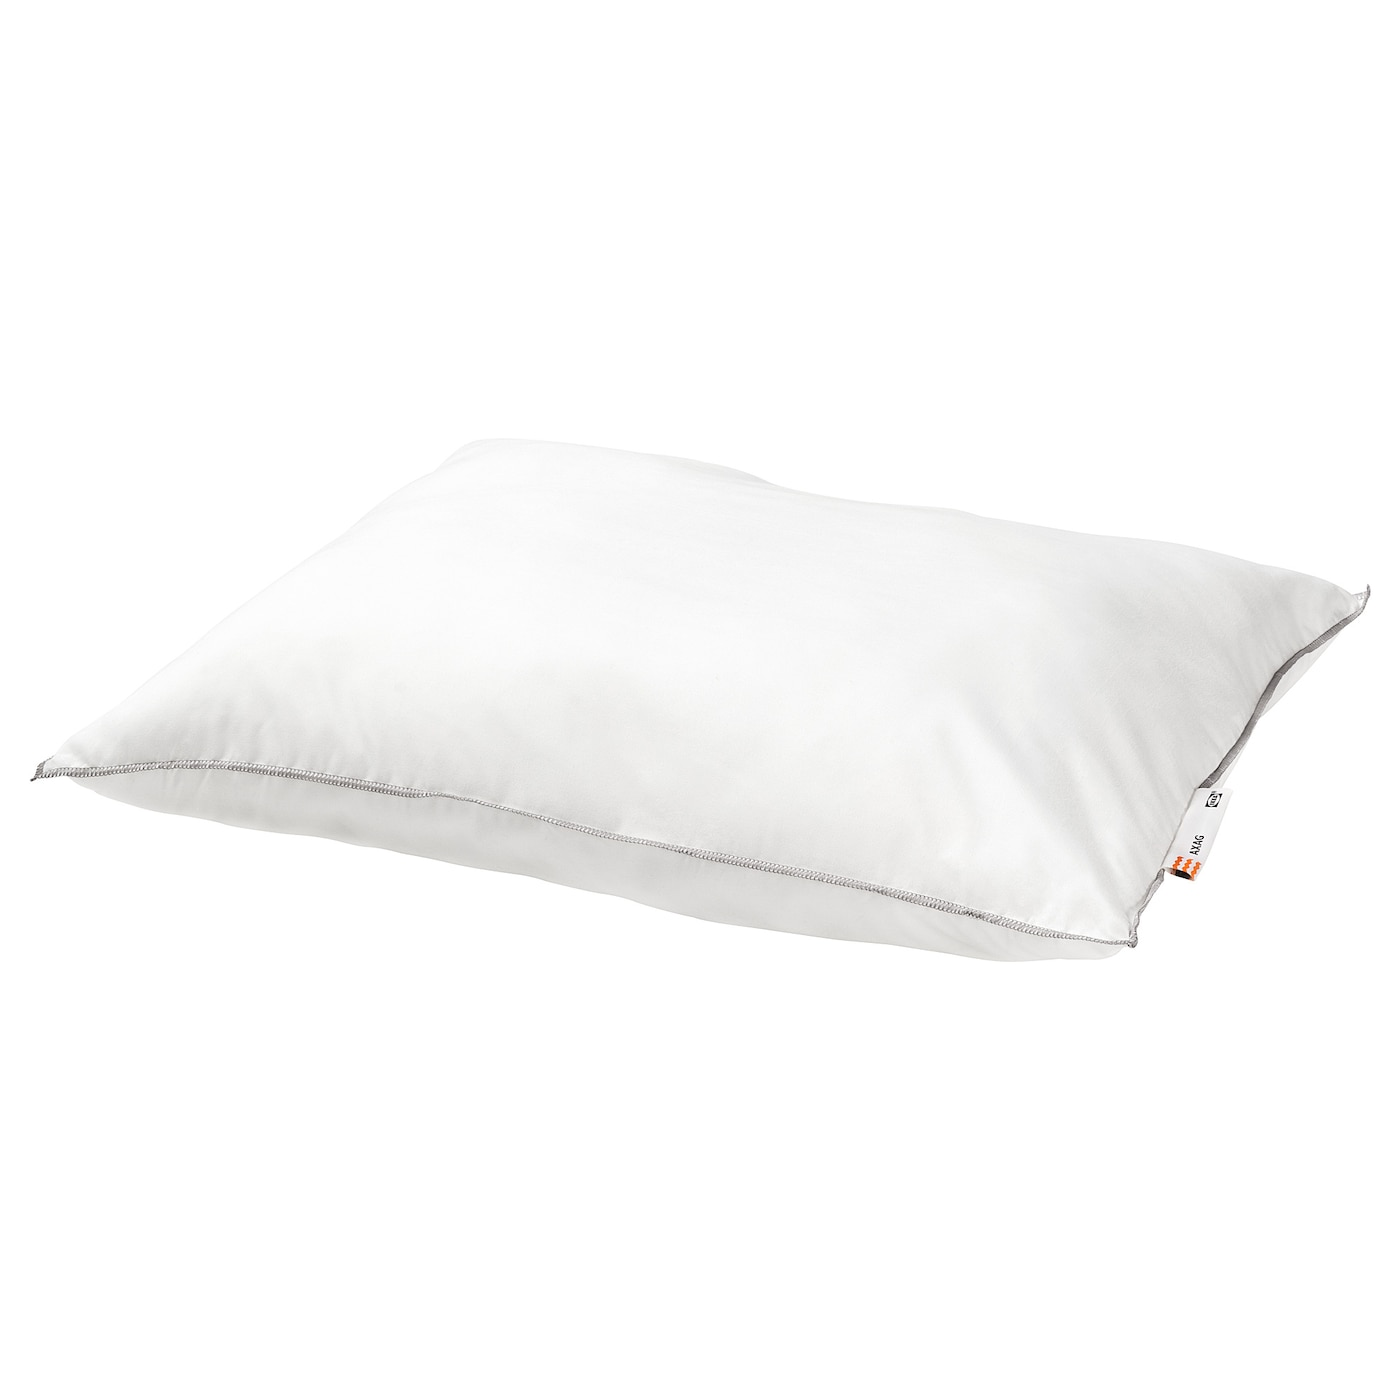 IKEA AXAG pillow, softer A soft, easy-care pillow in brushed microfibre with a ball fibre filling.